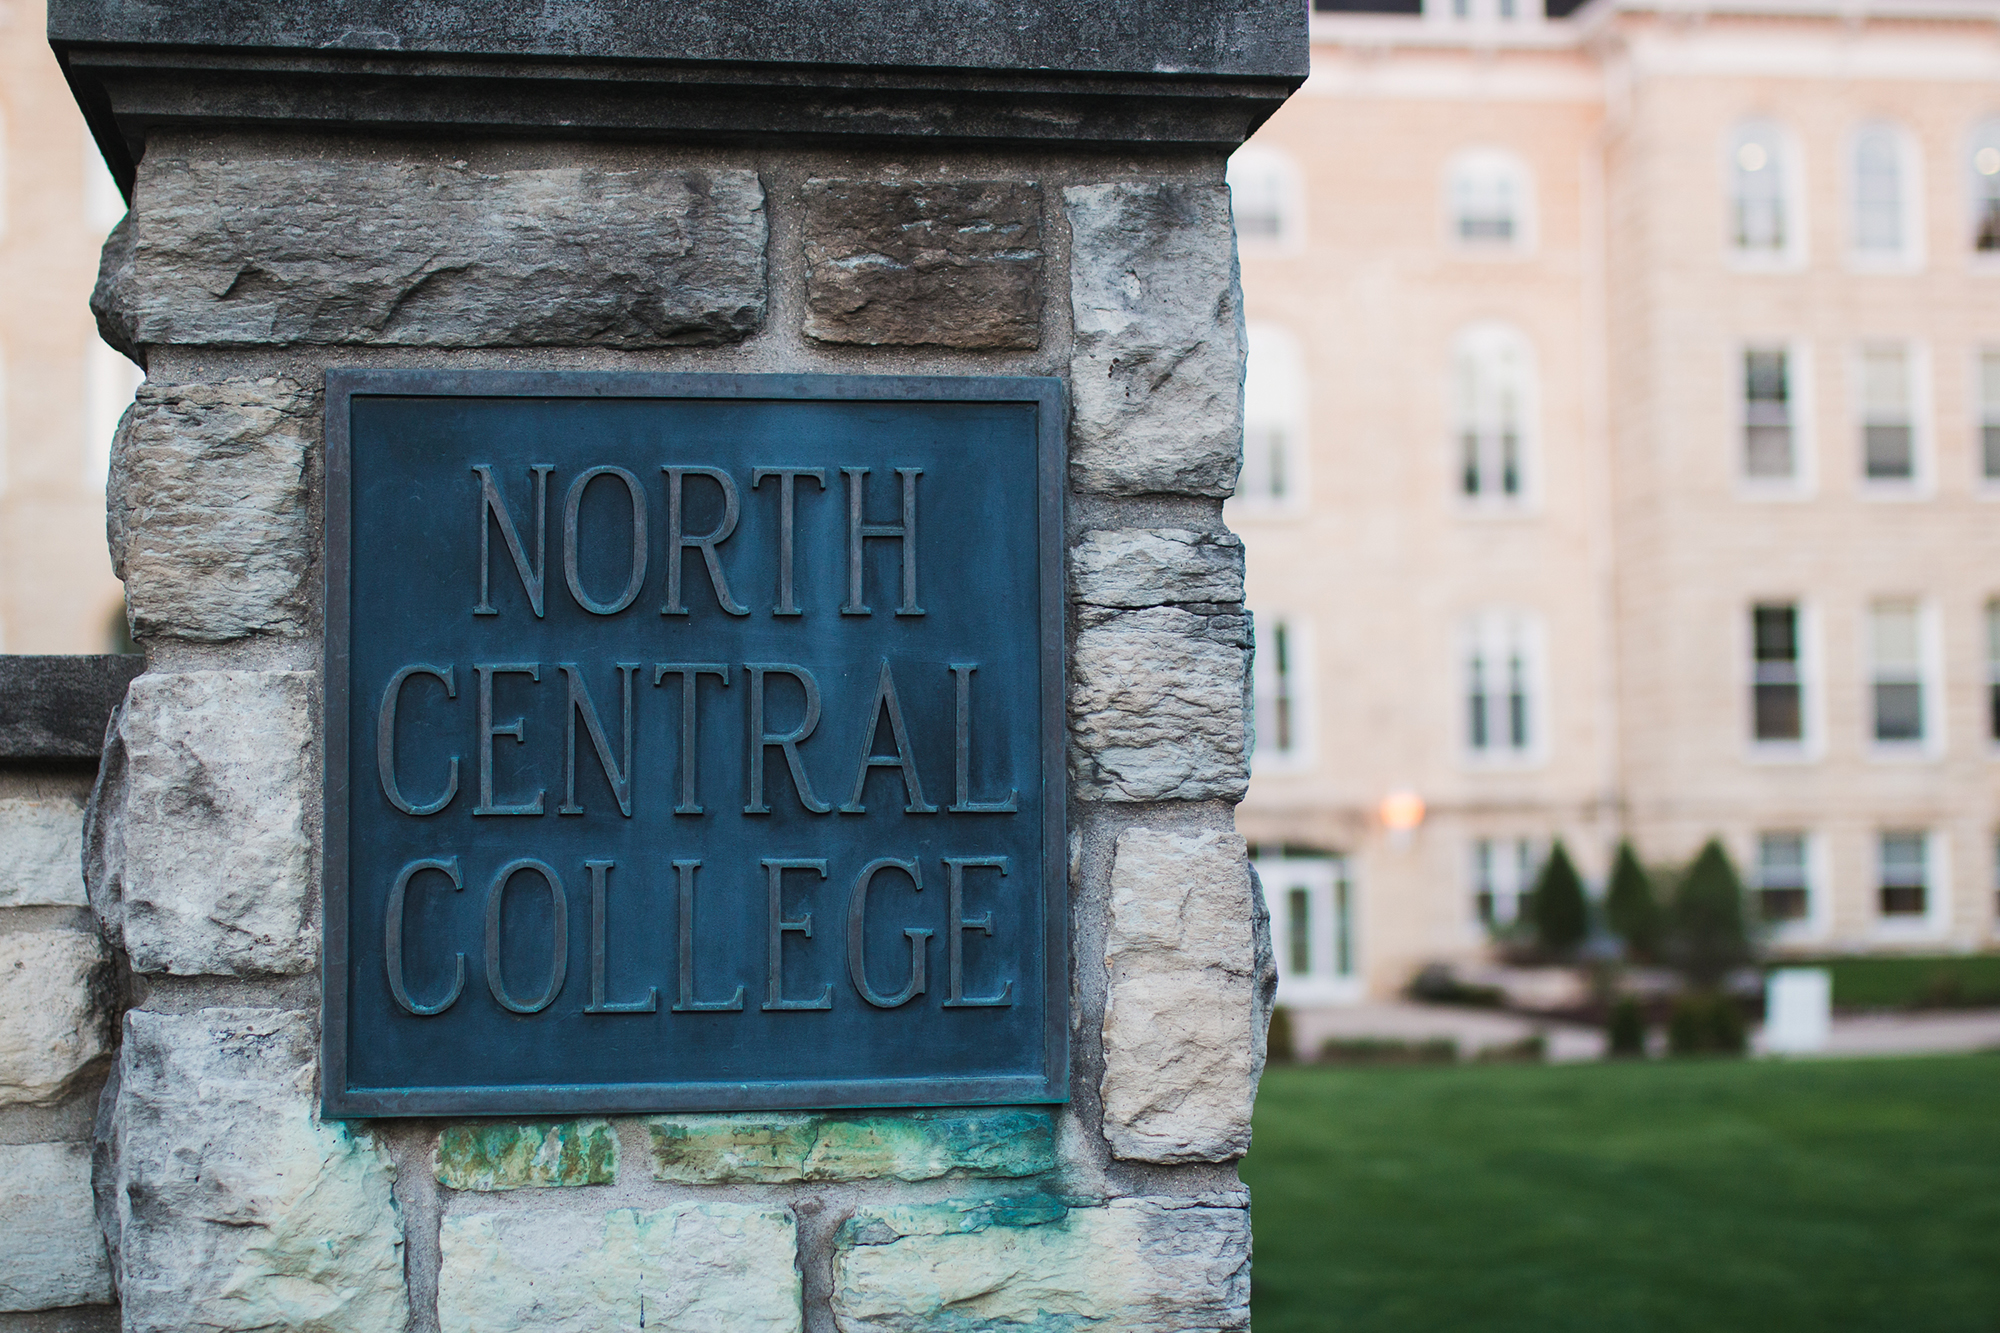 North Central College sign